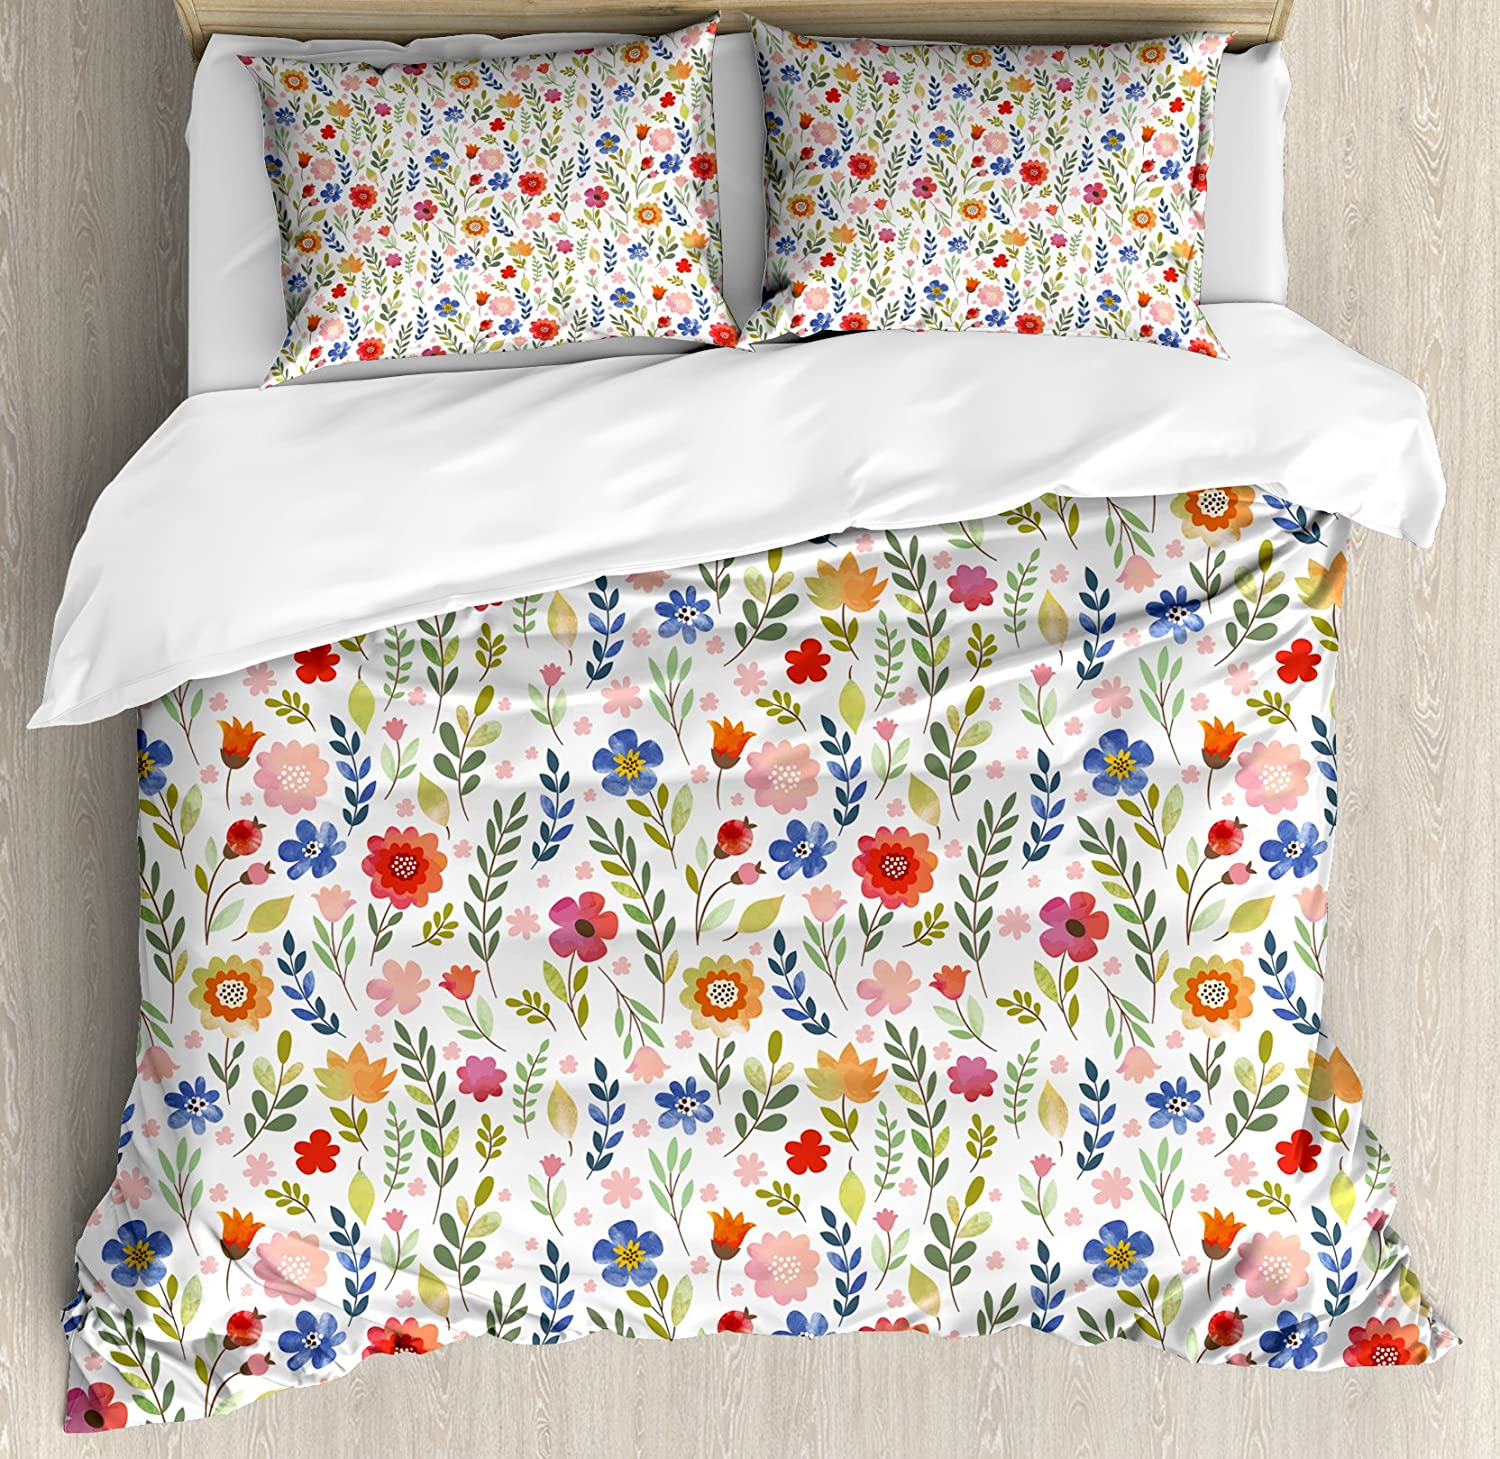 Ambesonne Watercolor Duvet Cover Set, Floral Patterned Illustration with Leaves and Wildflowers Abstract Botanical, Decorative 3 Piece Bedding Set with 2 Pillow Shams, King Size, Violet Blue